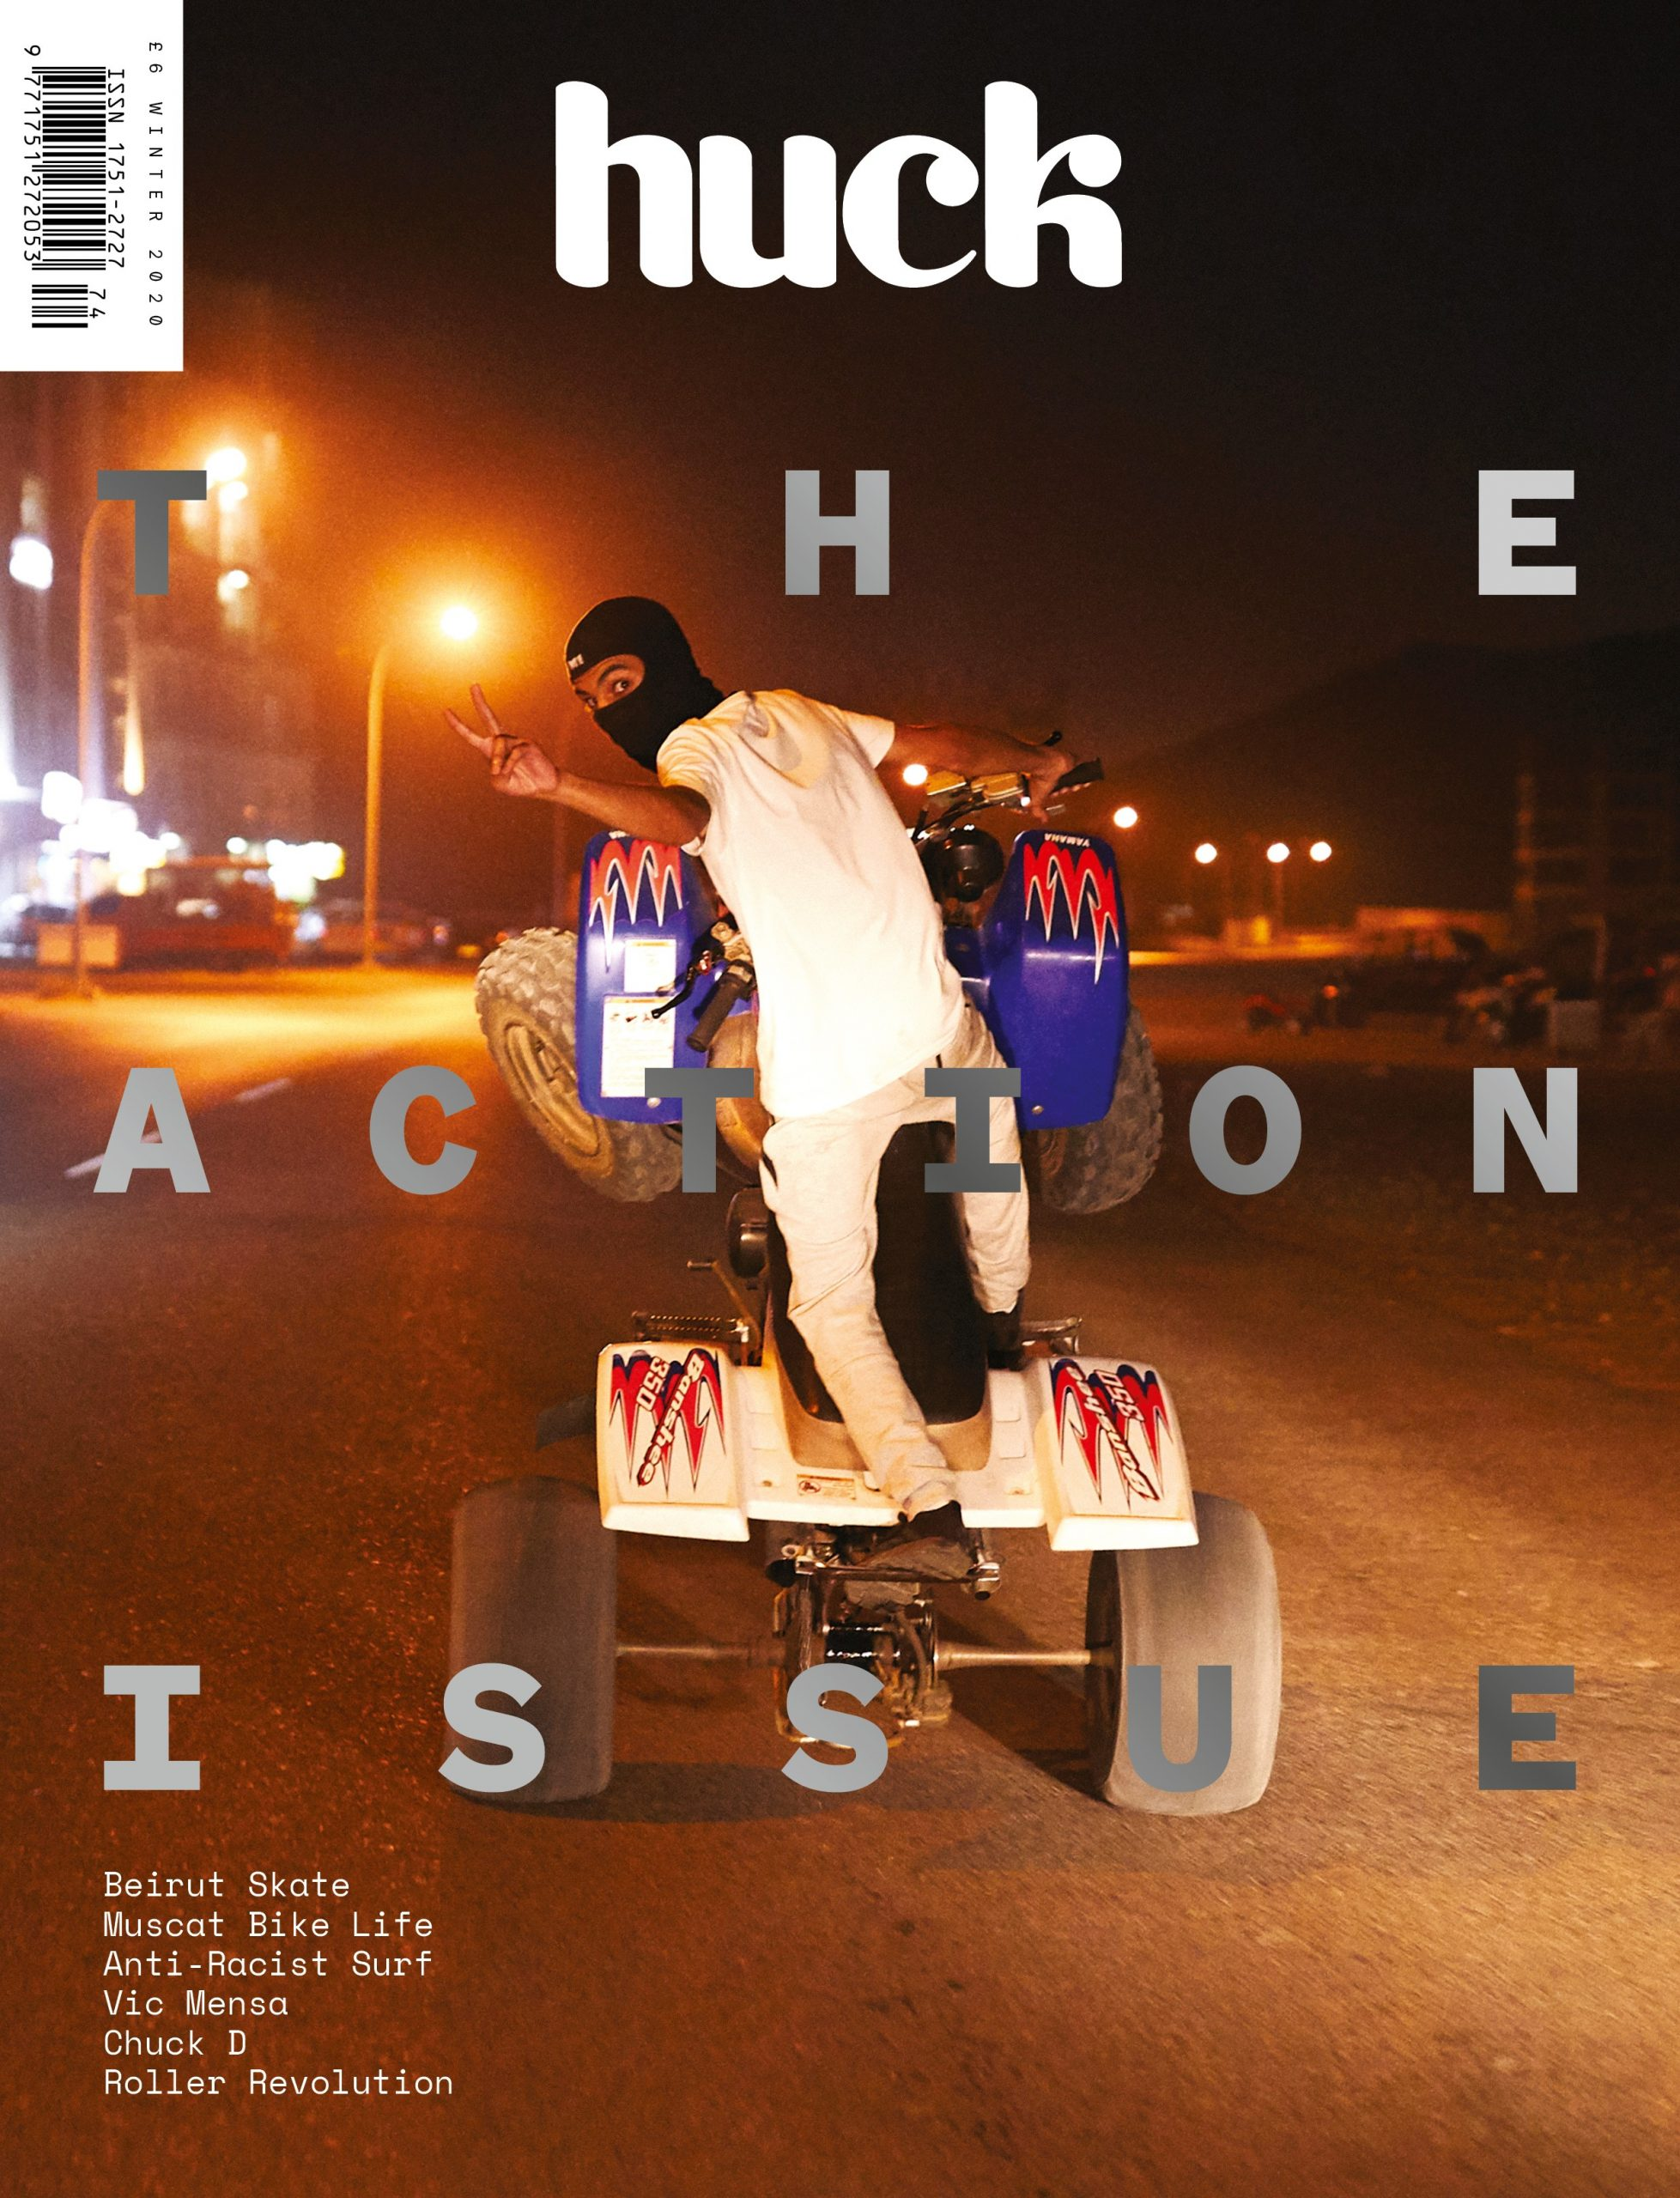 Back Issue - 74 - The Action Issue